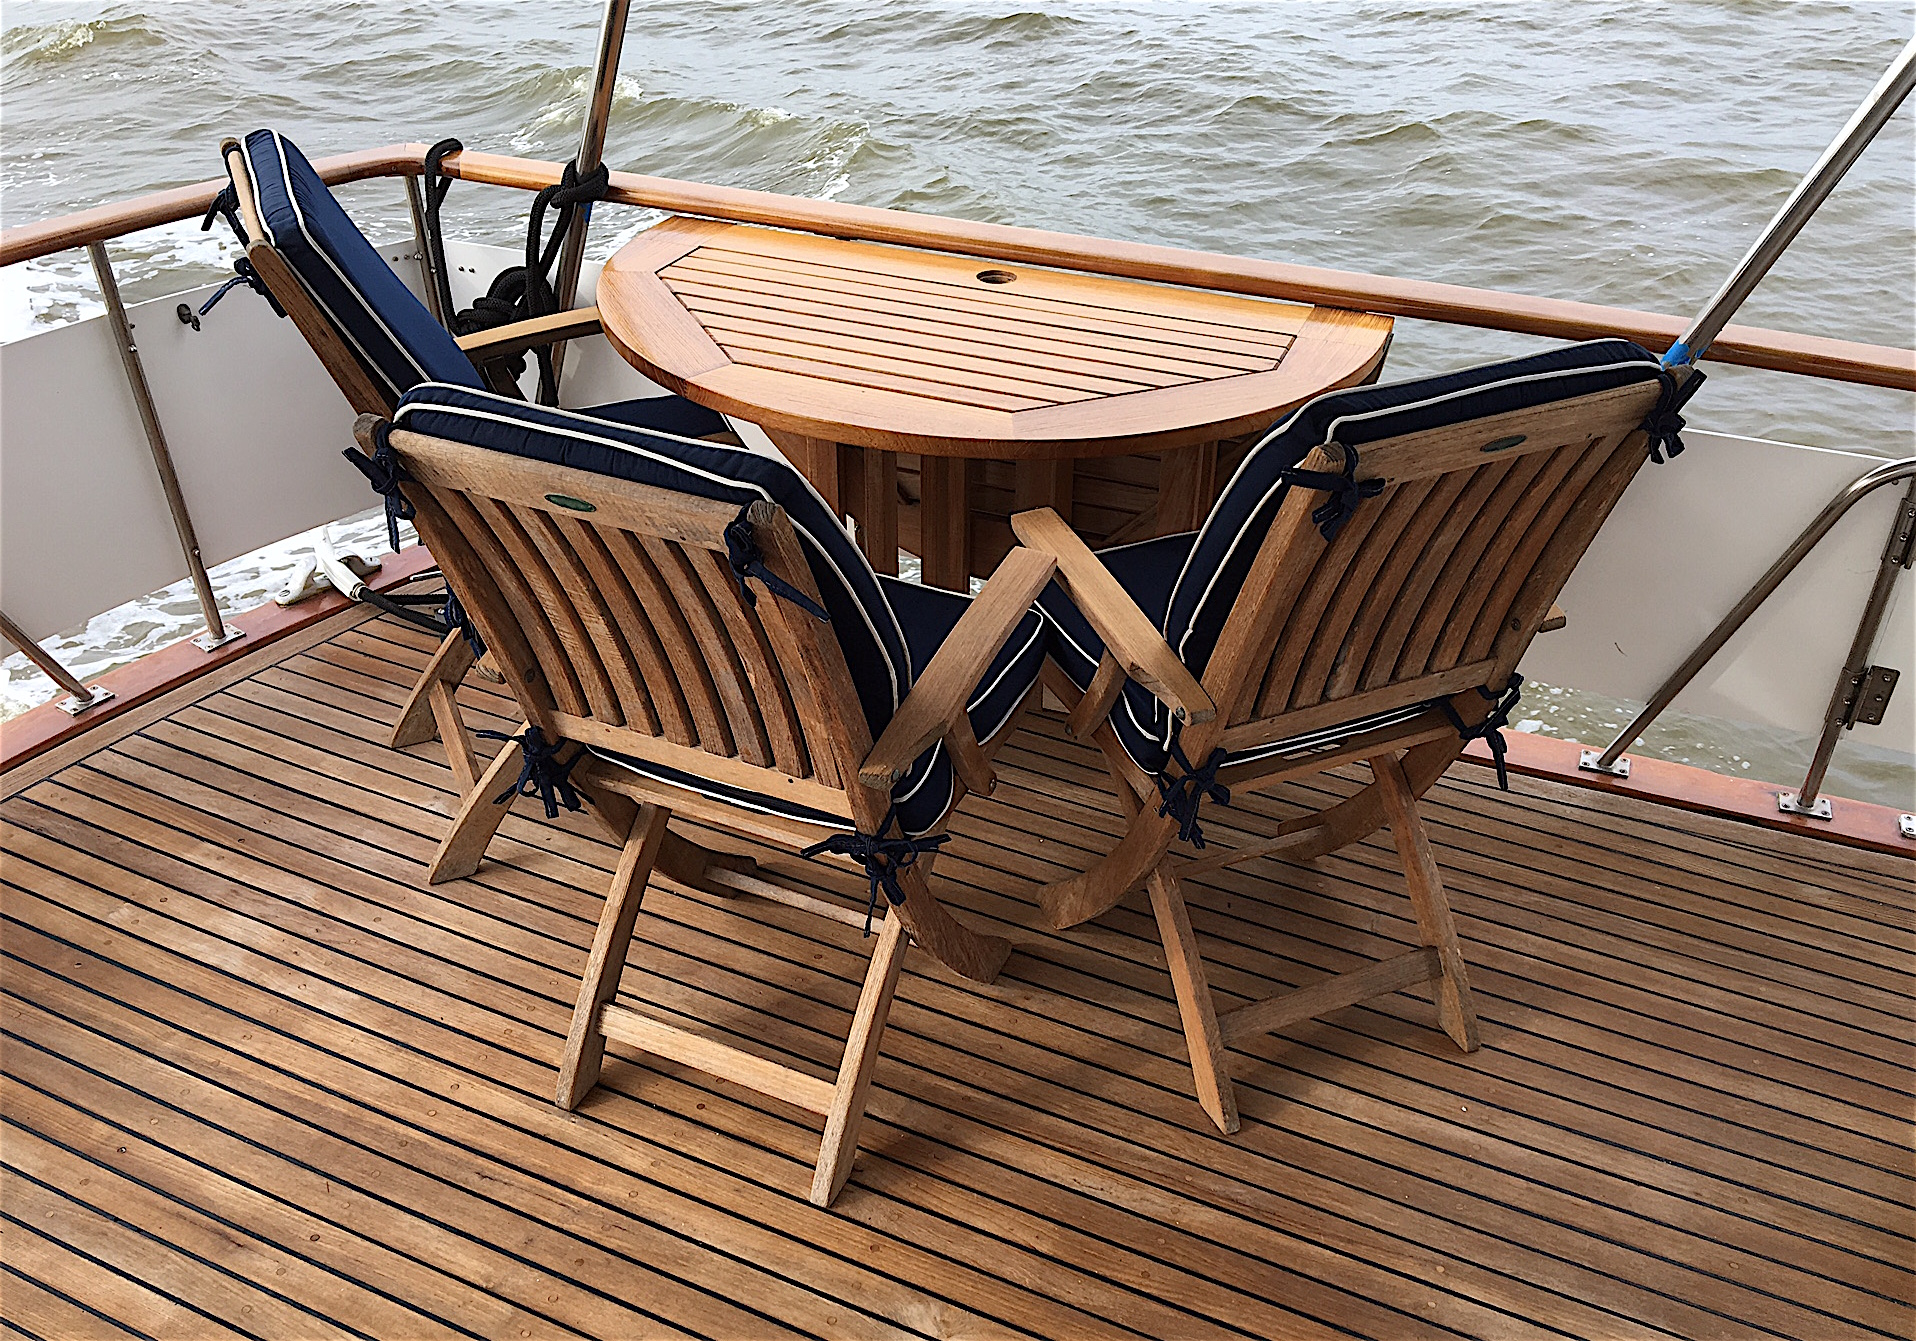 The Aft Sundeck Is At Least For Us Key To Outdoor Lifestyle We Live On Board Life S Travails Spreading Across Full Beam Of Boat